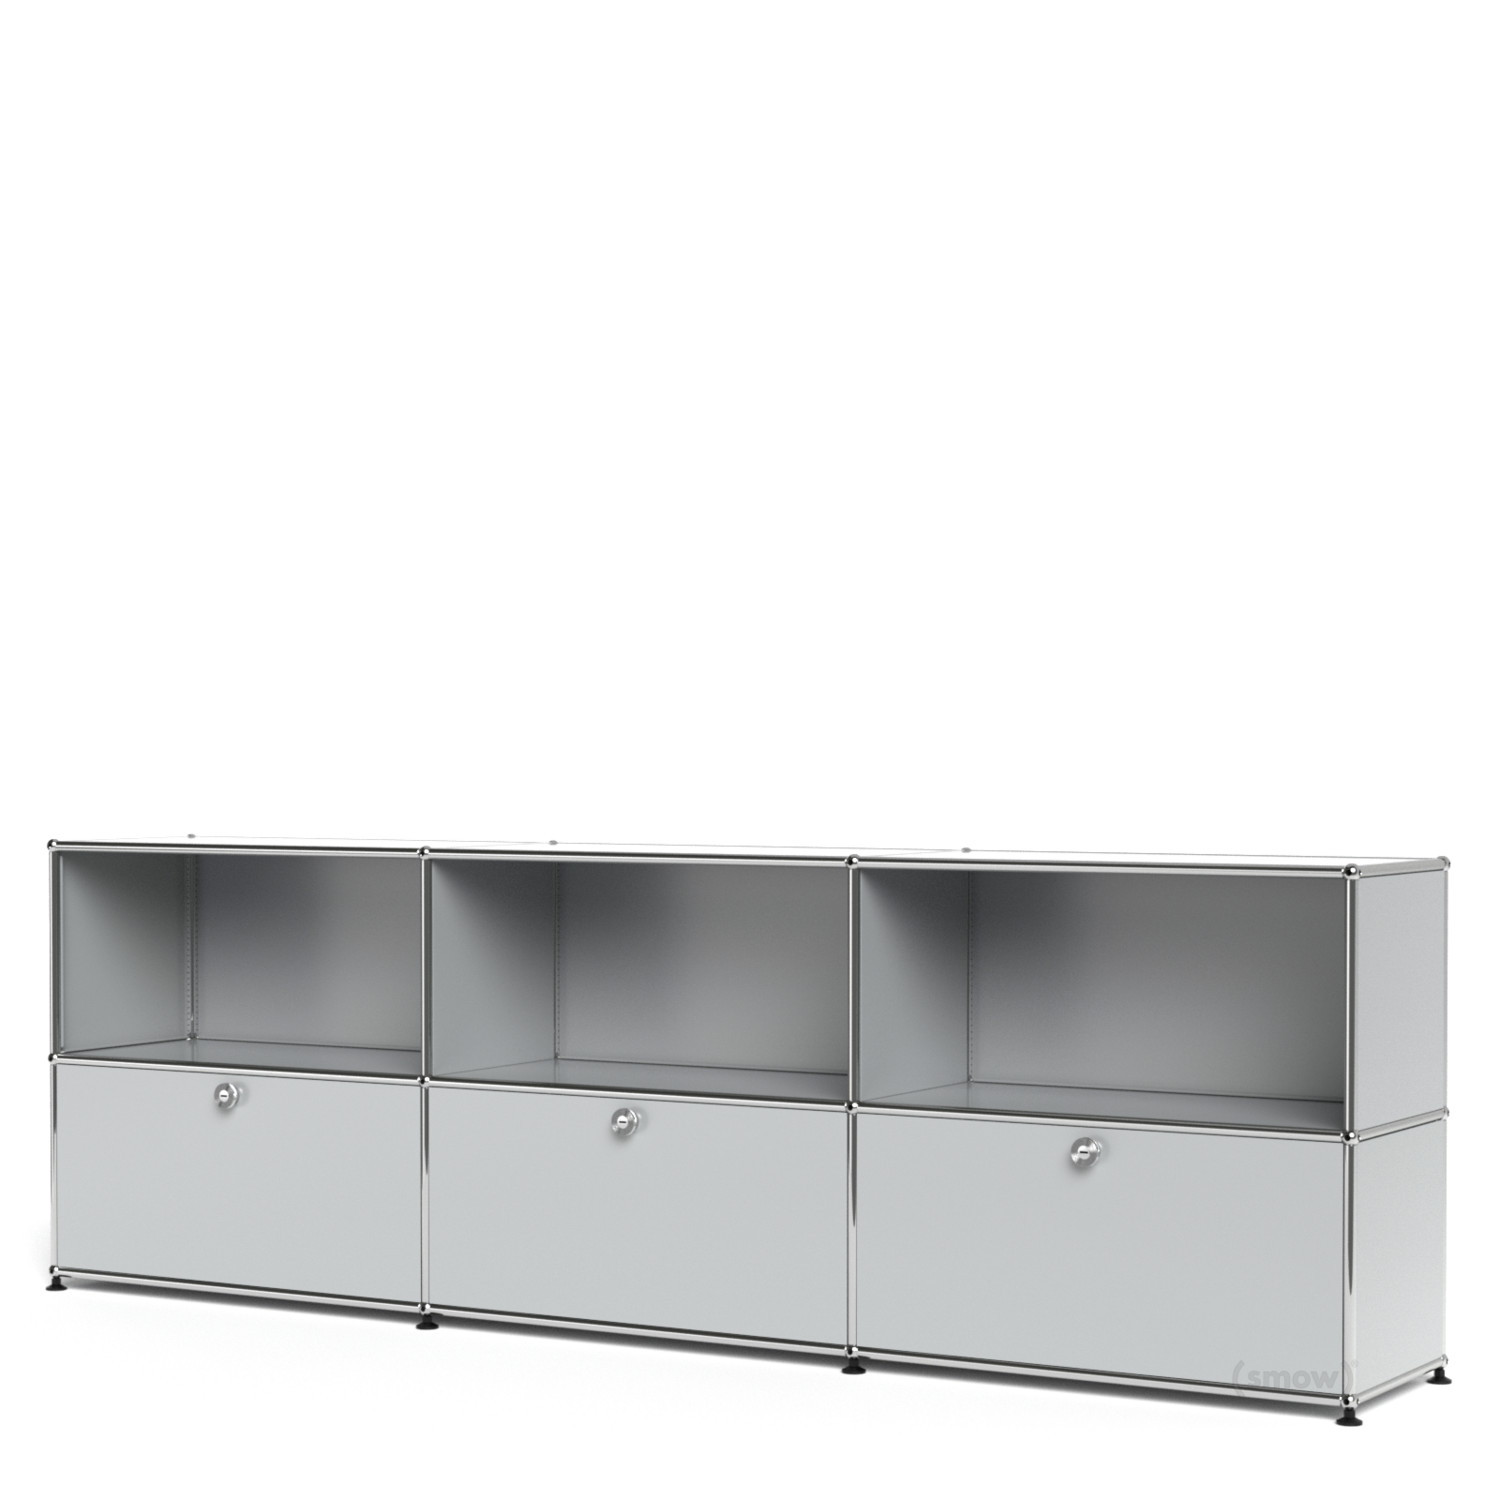 Usm Haller Sideboard Xl Customisable Light Grey Ral 7035